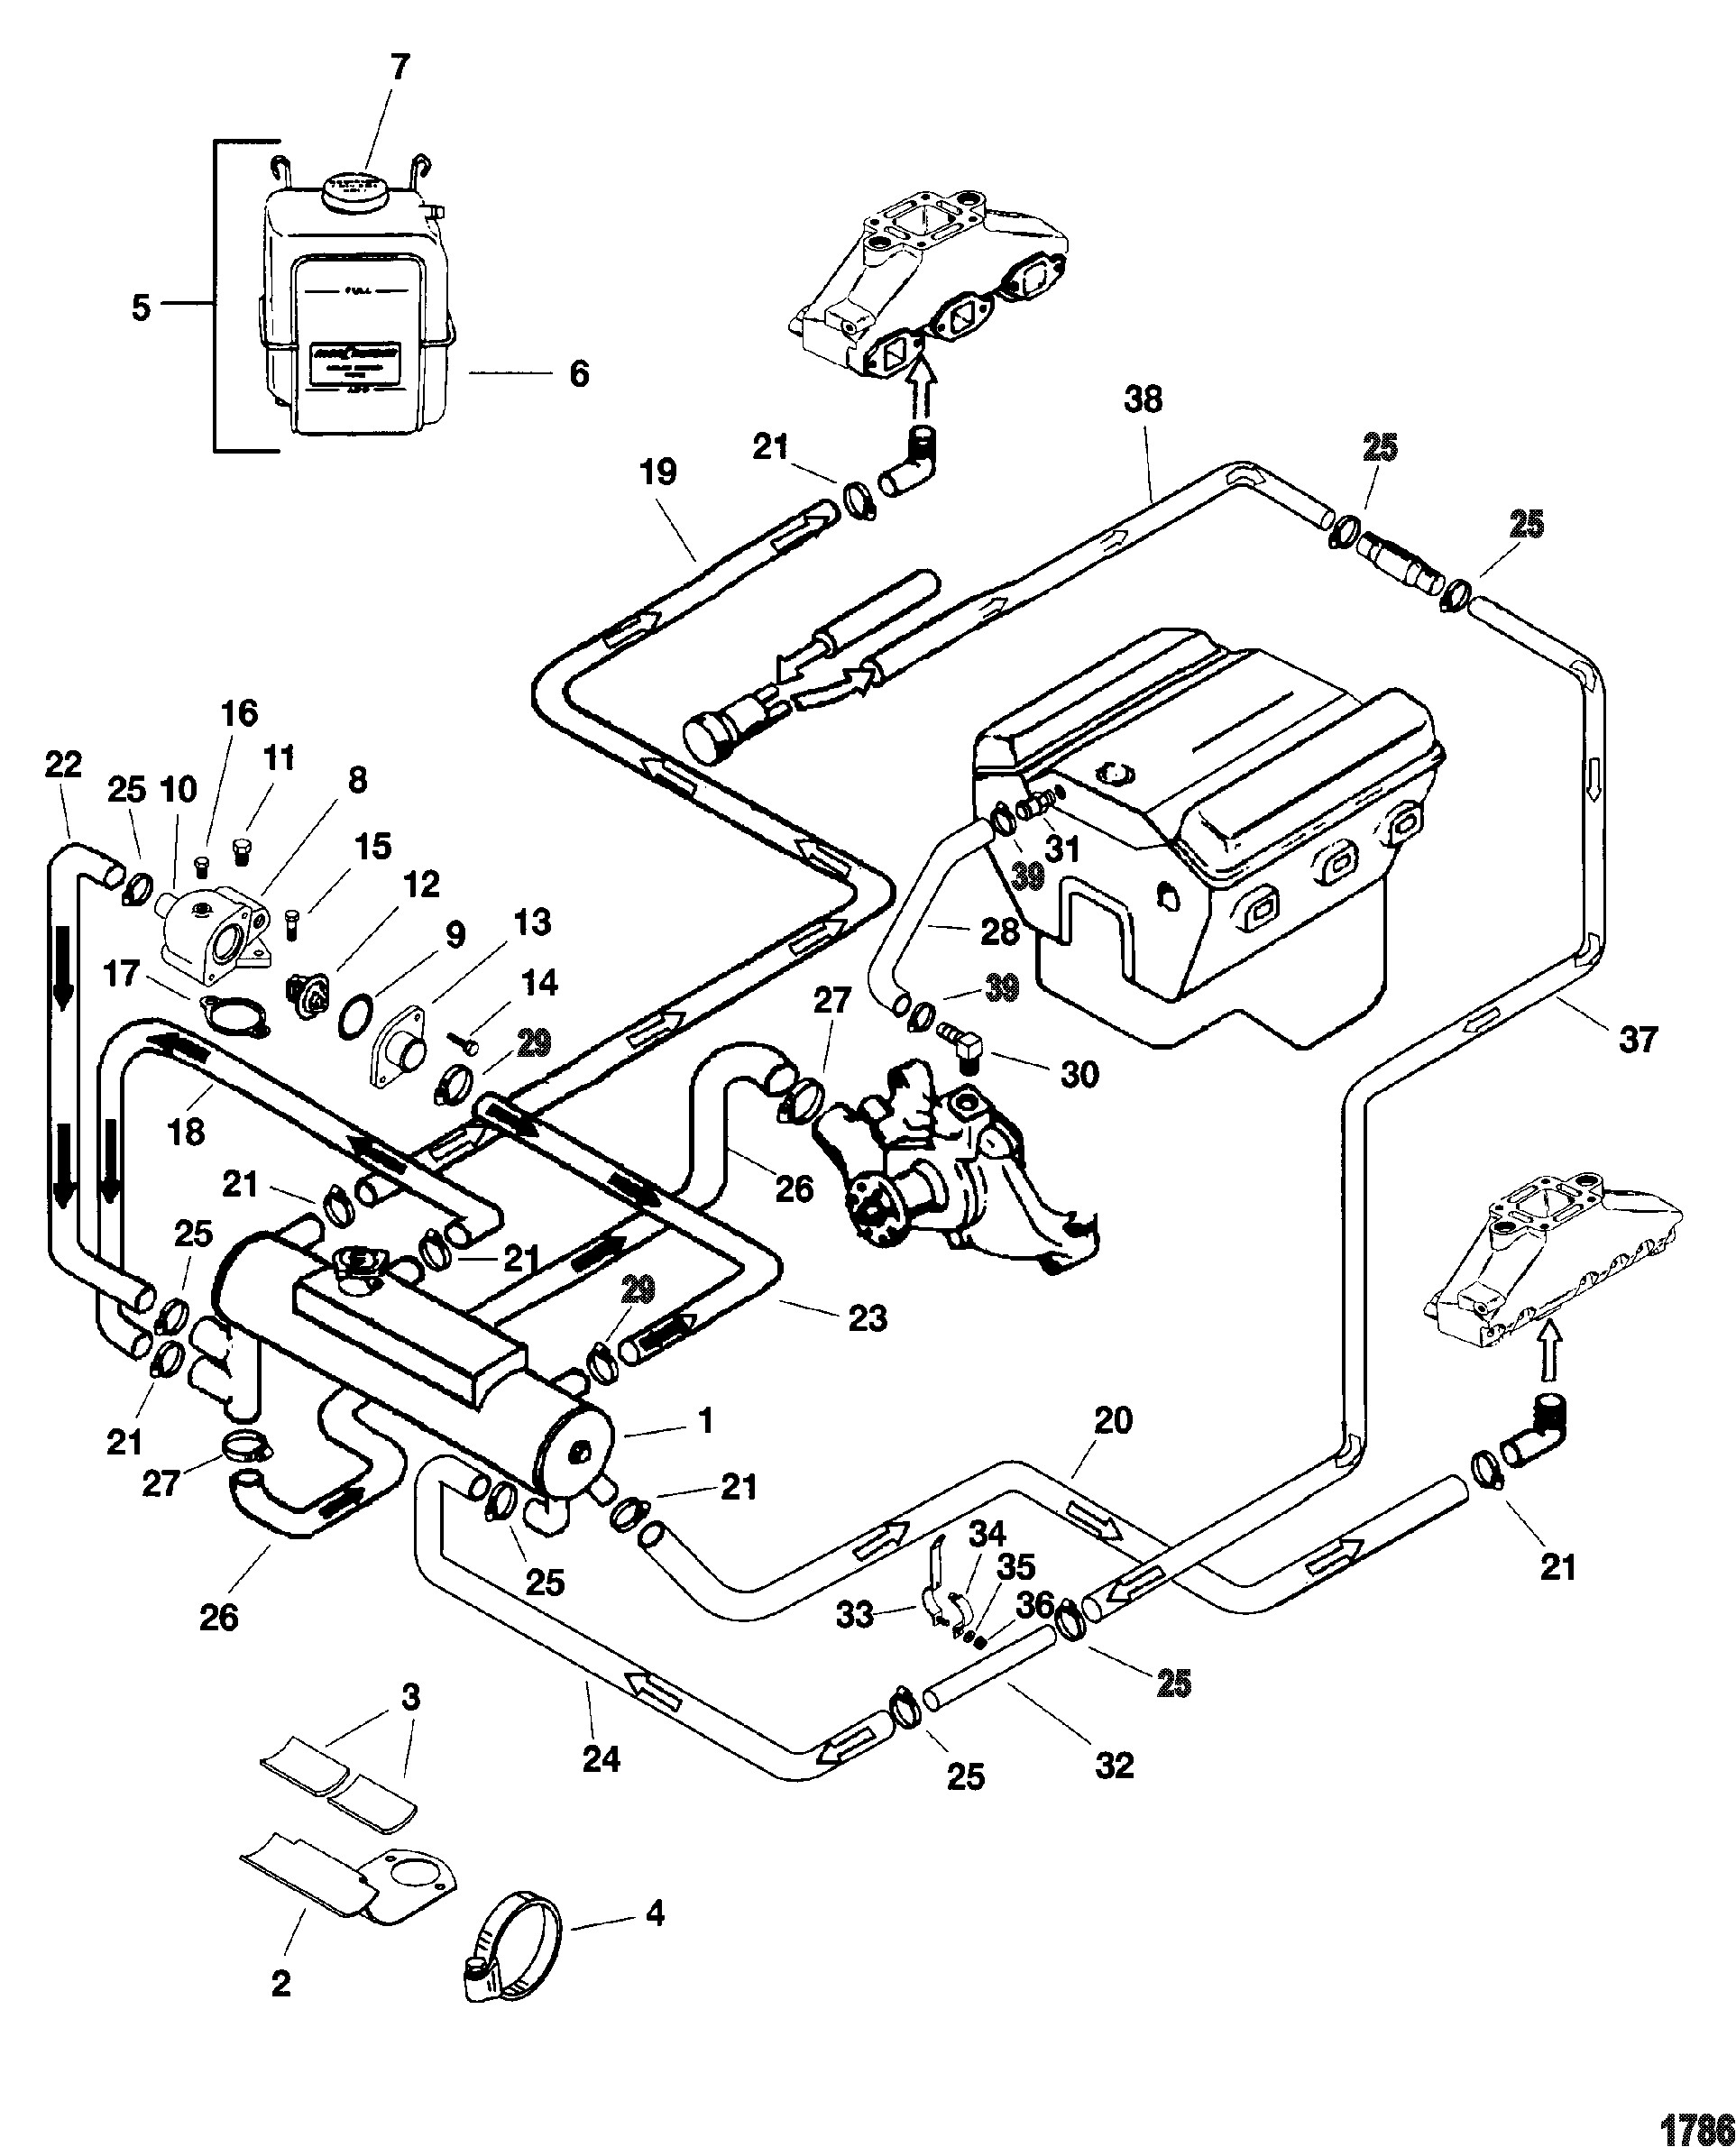 2004 mini cooper s engine diagram best wiring library [ 806 x 997 Pixel ]